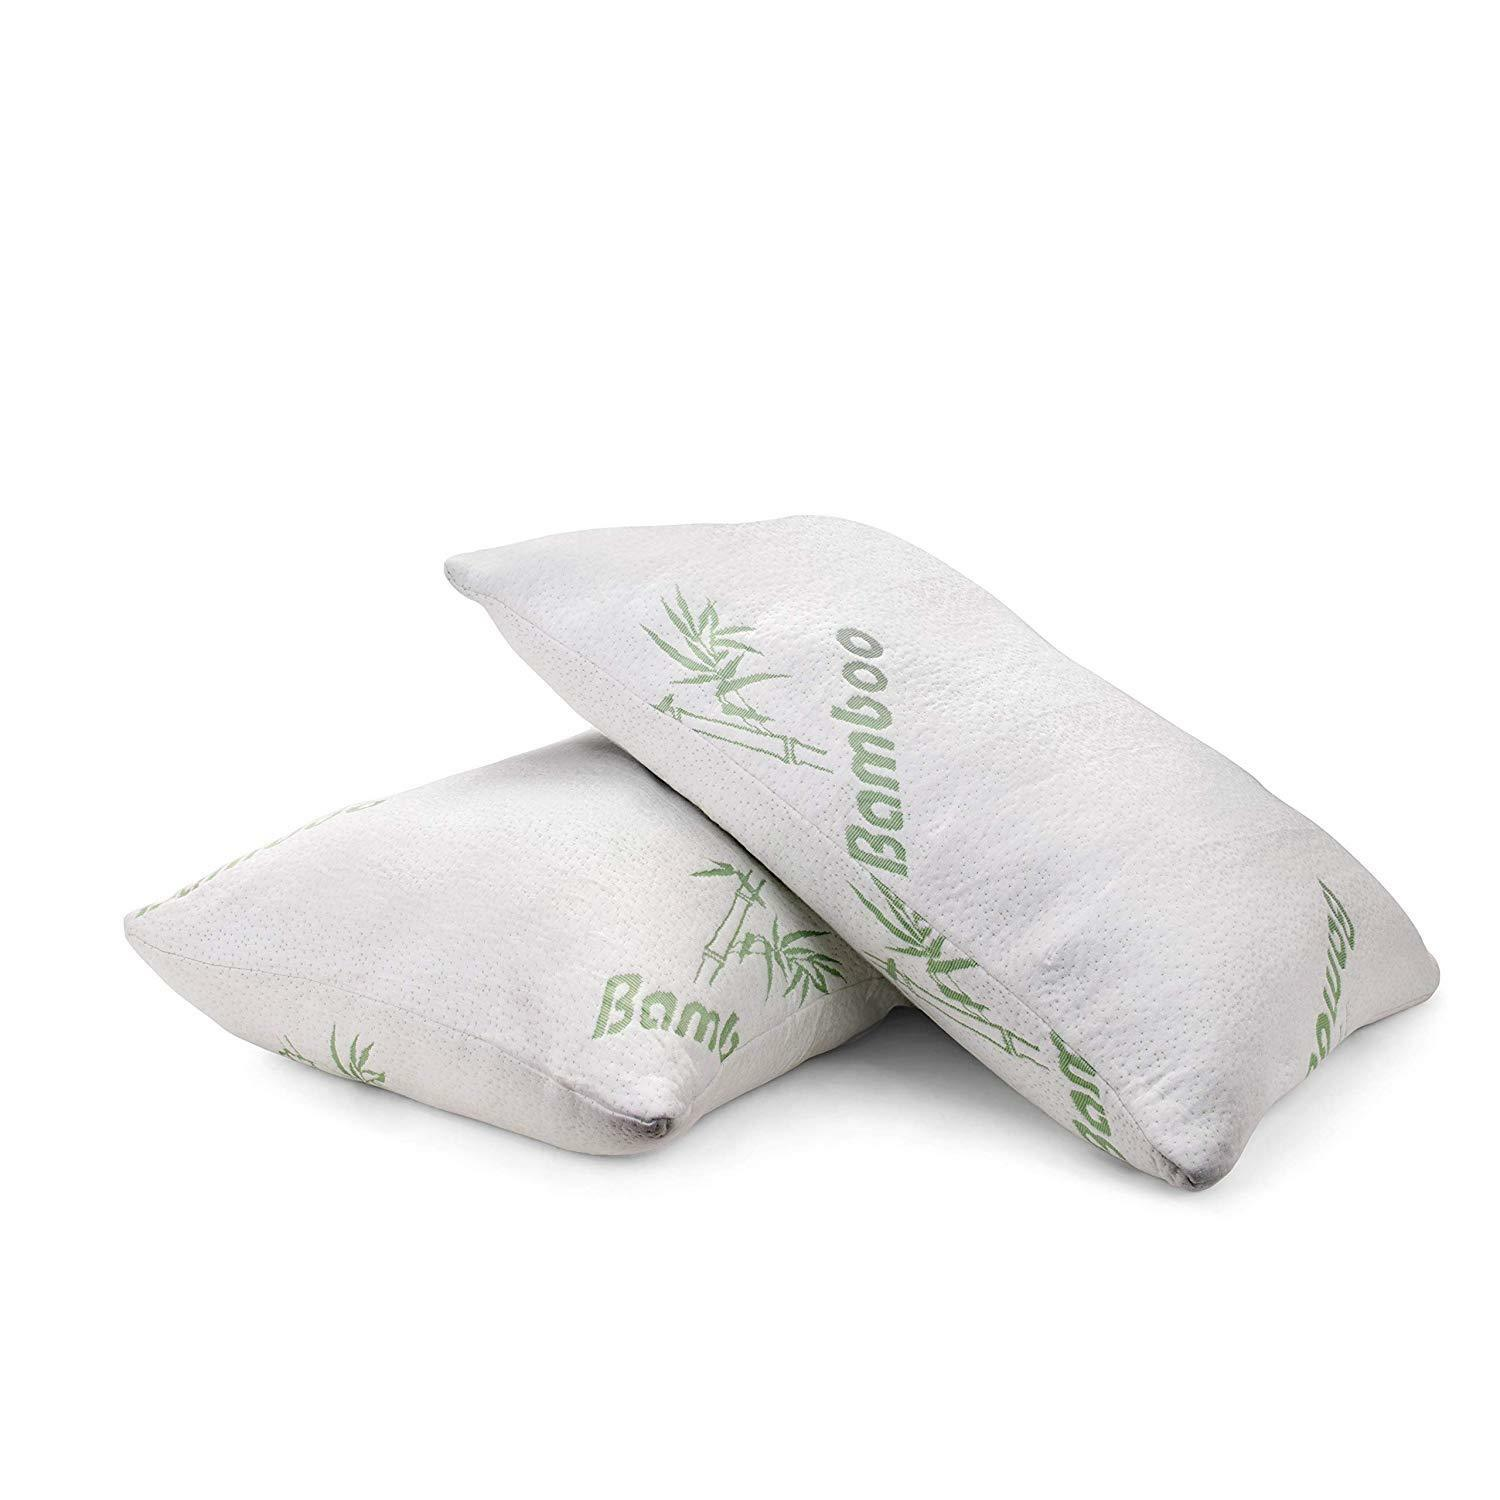 Bamboo Pillow Hypoallergenic Shredded Memory Foam Fill With Zipper